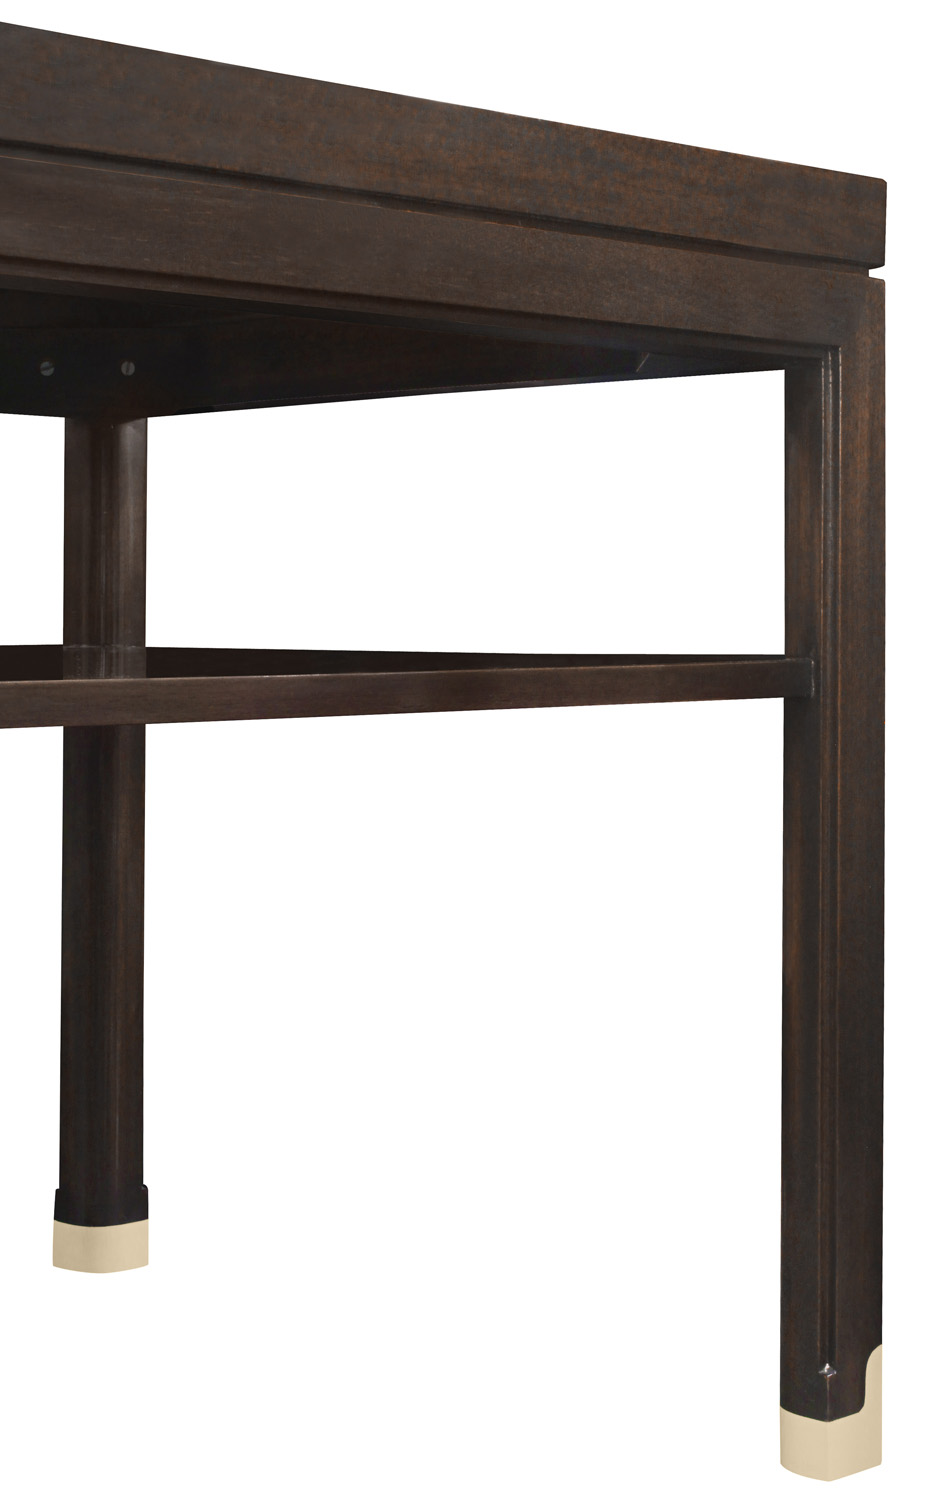 Parzinger 12 lng mahg+iinlays endtable155 detail4 hires.jpg